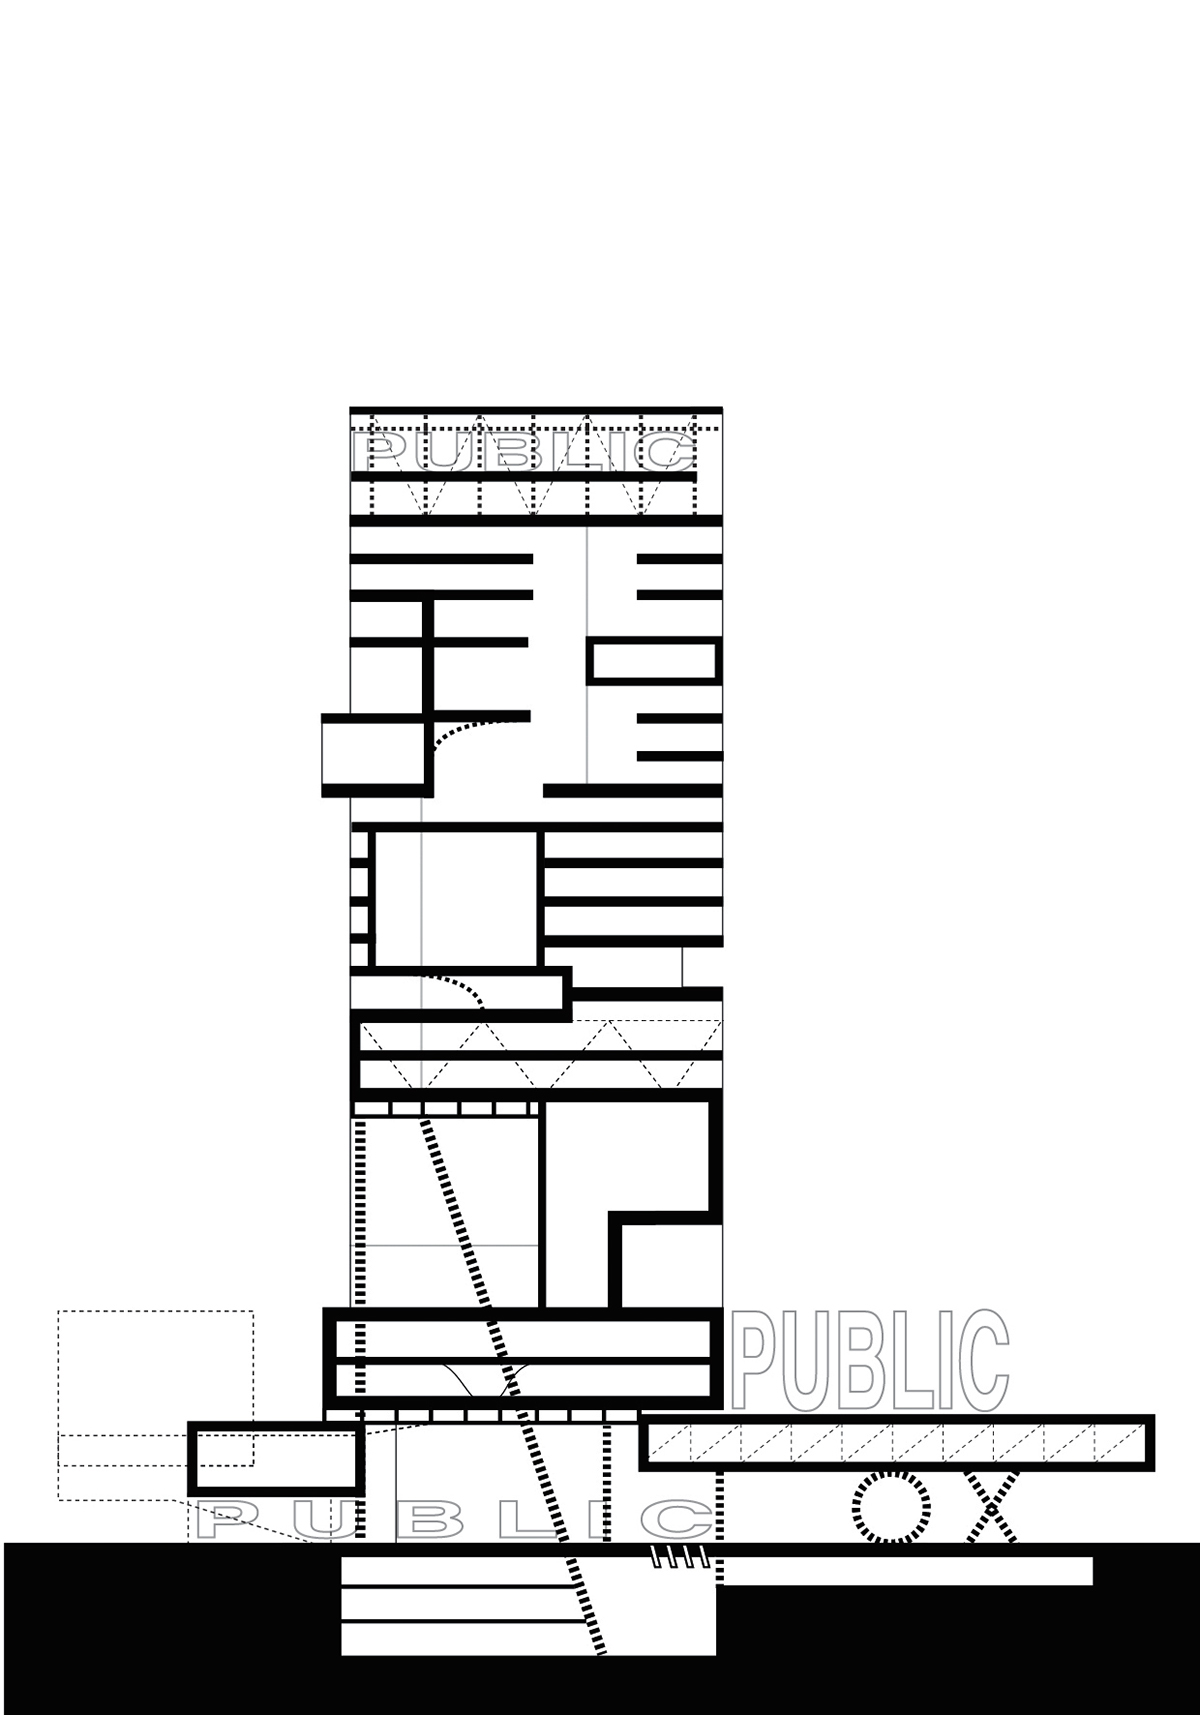 46637652 besides 24155 Set Layout Of The Building Design Vector Graphics 02 as well Template finder additionally Highrise Proposal Tokyo in addition You Are My Sunshine 2. on poster design layout